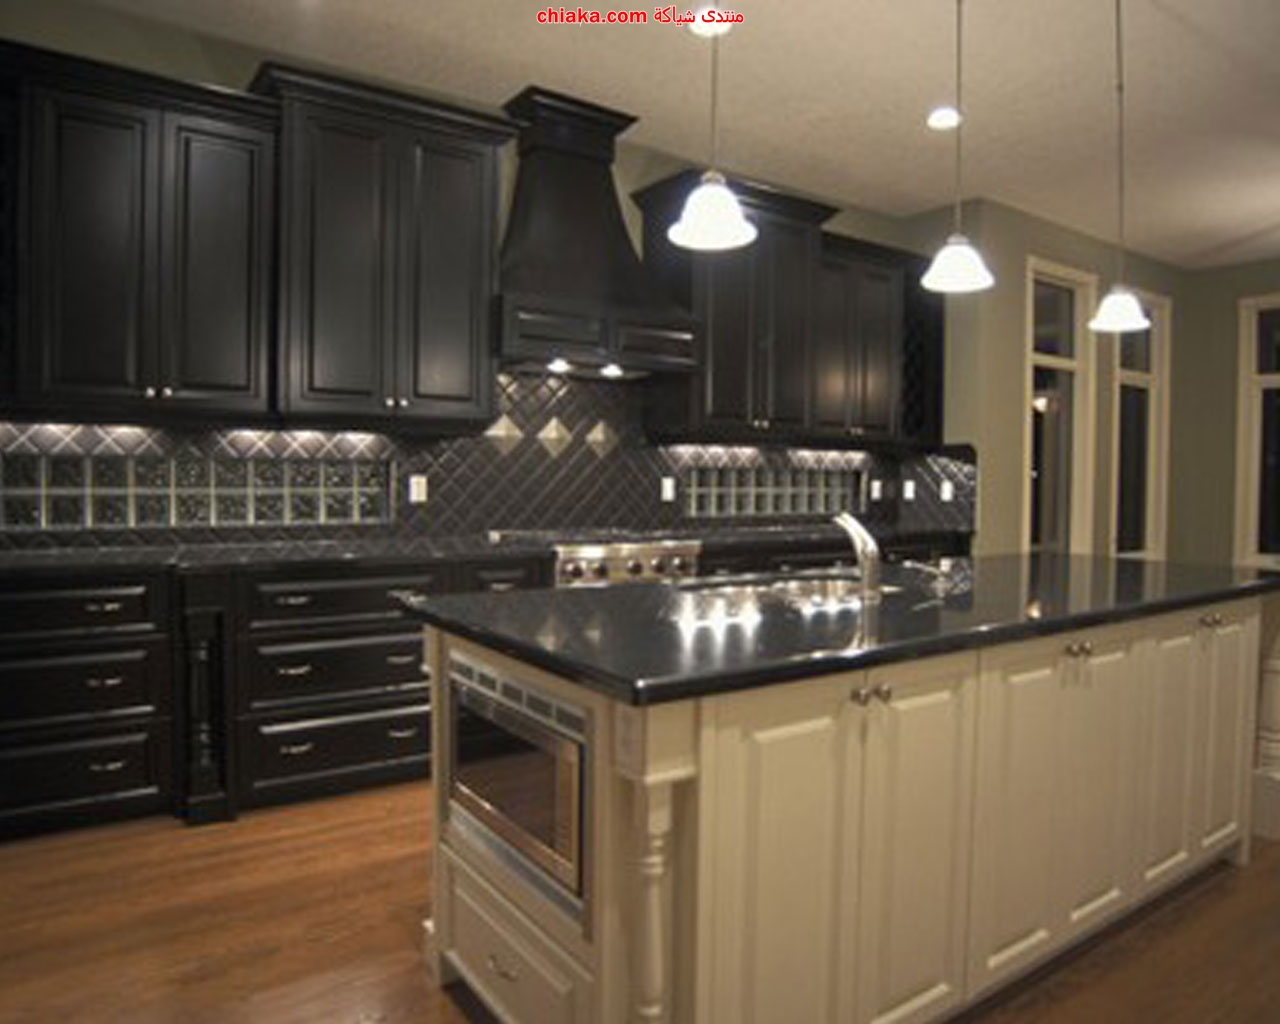 black cabinet kitchens pictures ديكورات مطابخ 2013 12346